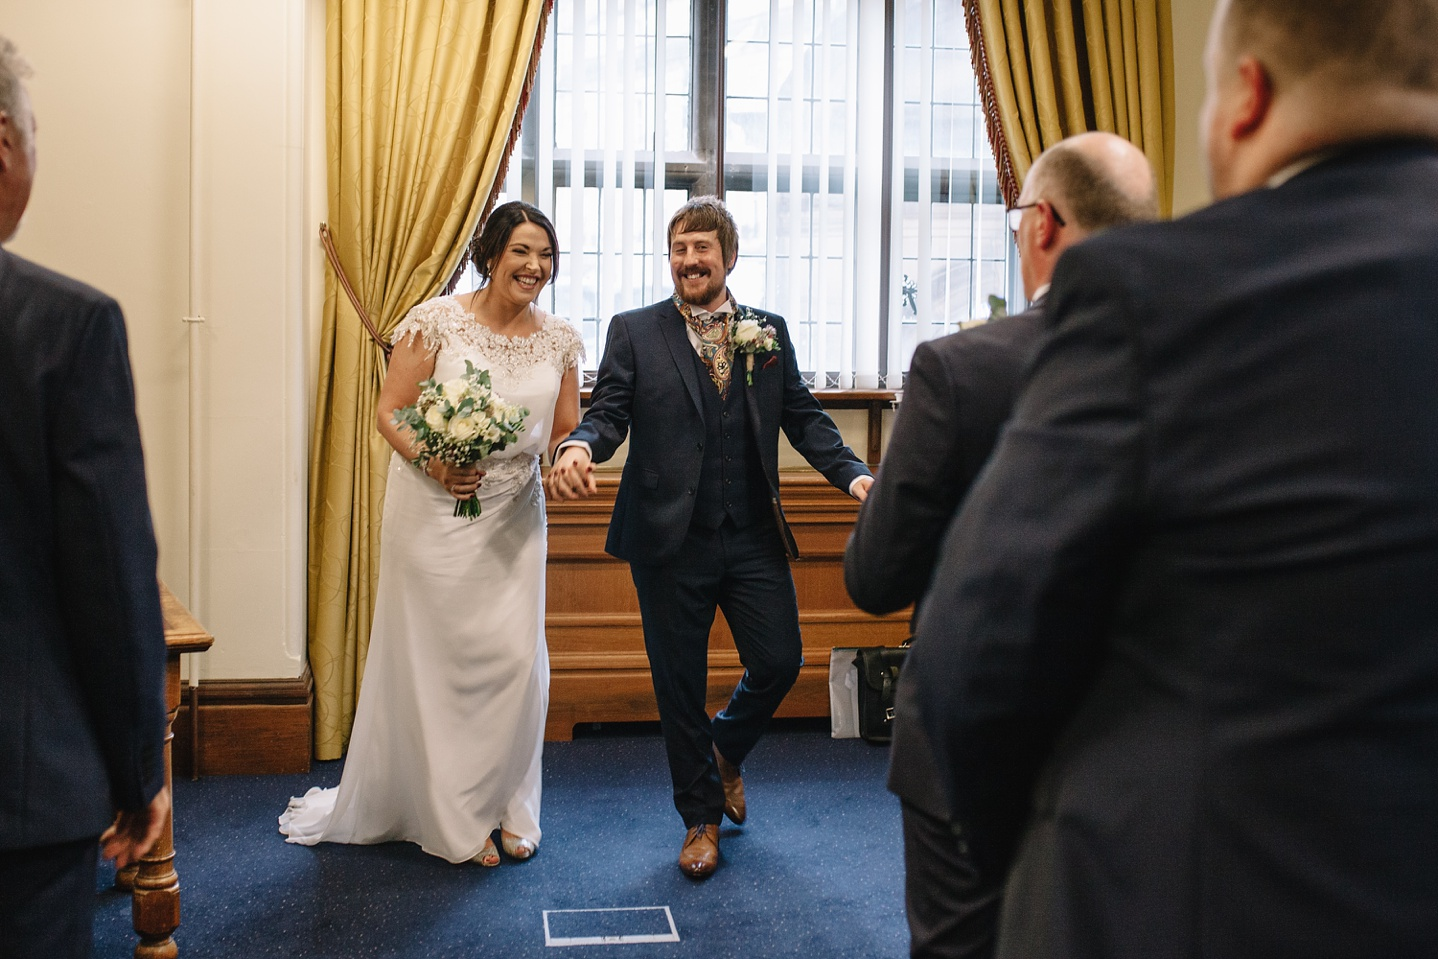 Bride and groom walking down the aisle at Sheffield Town Hall